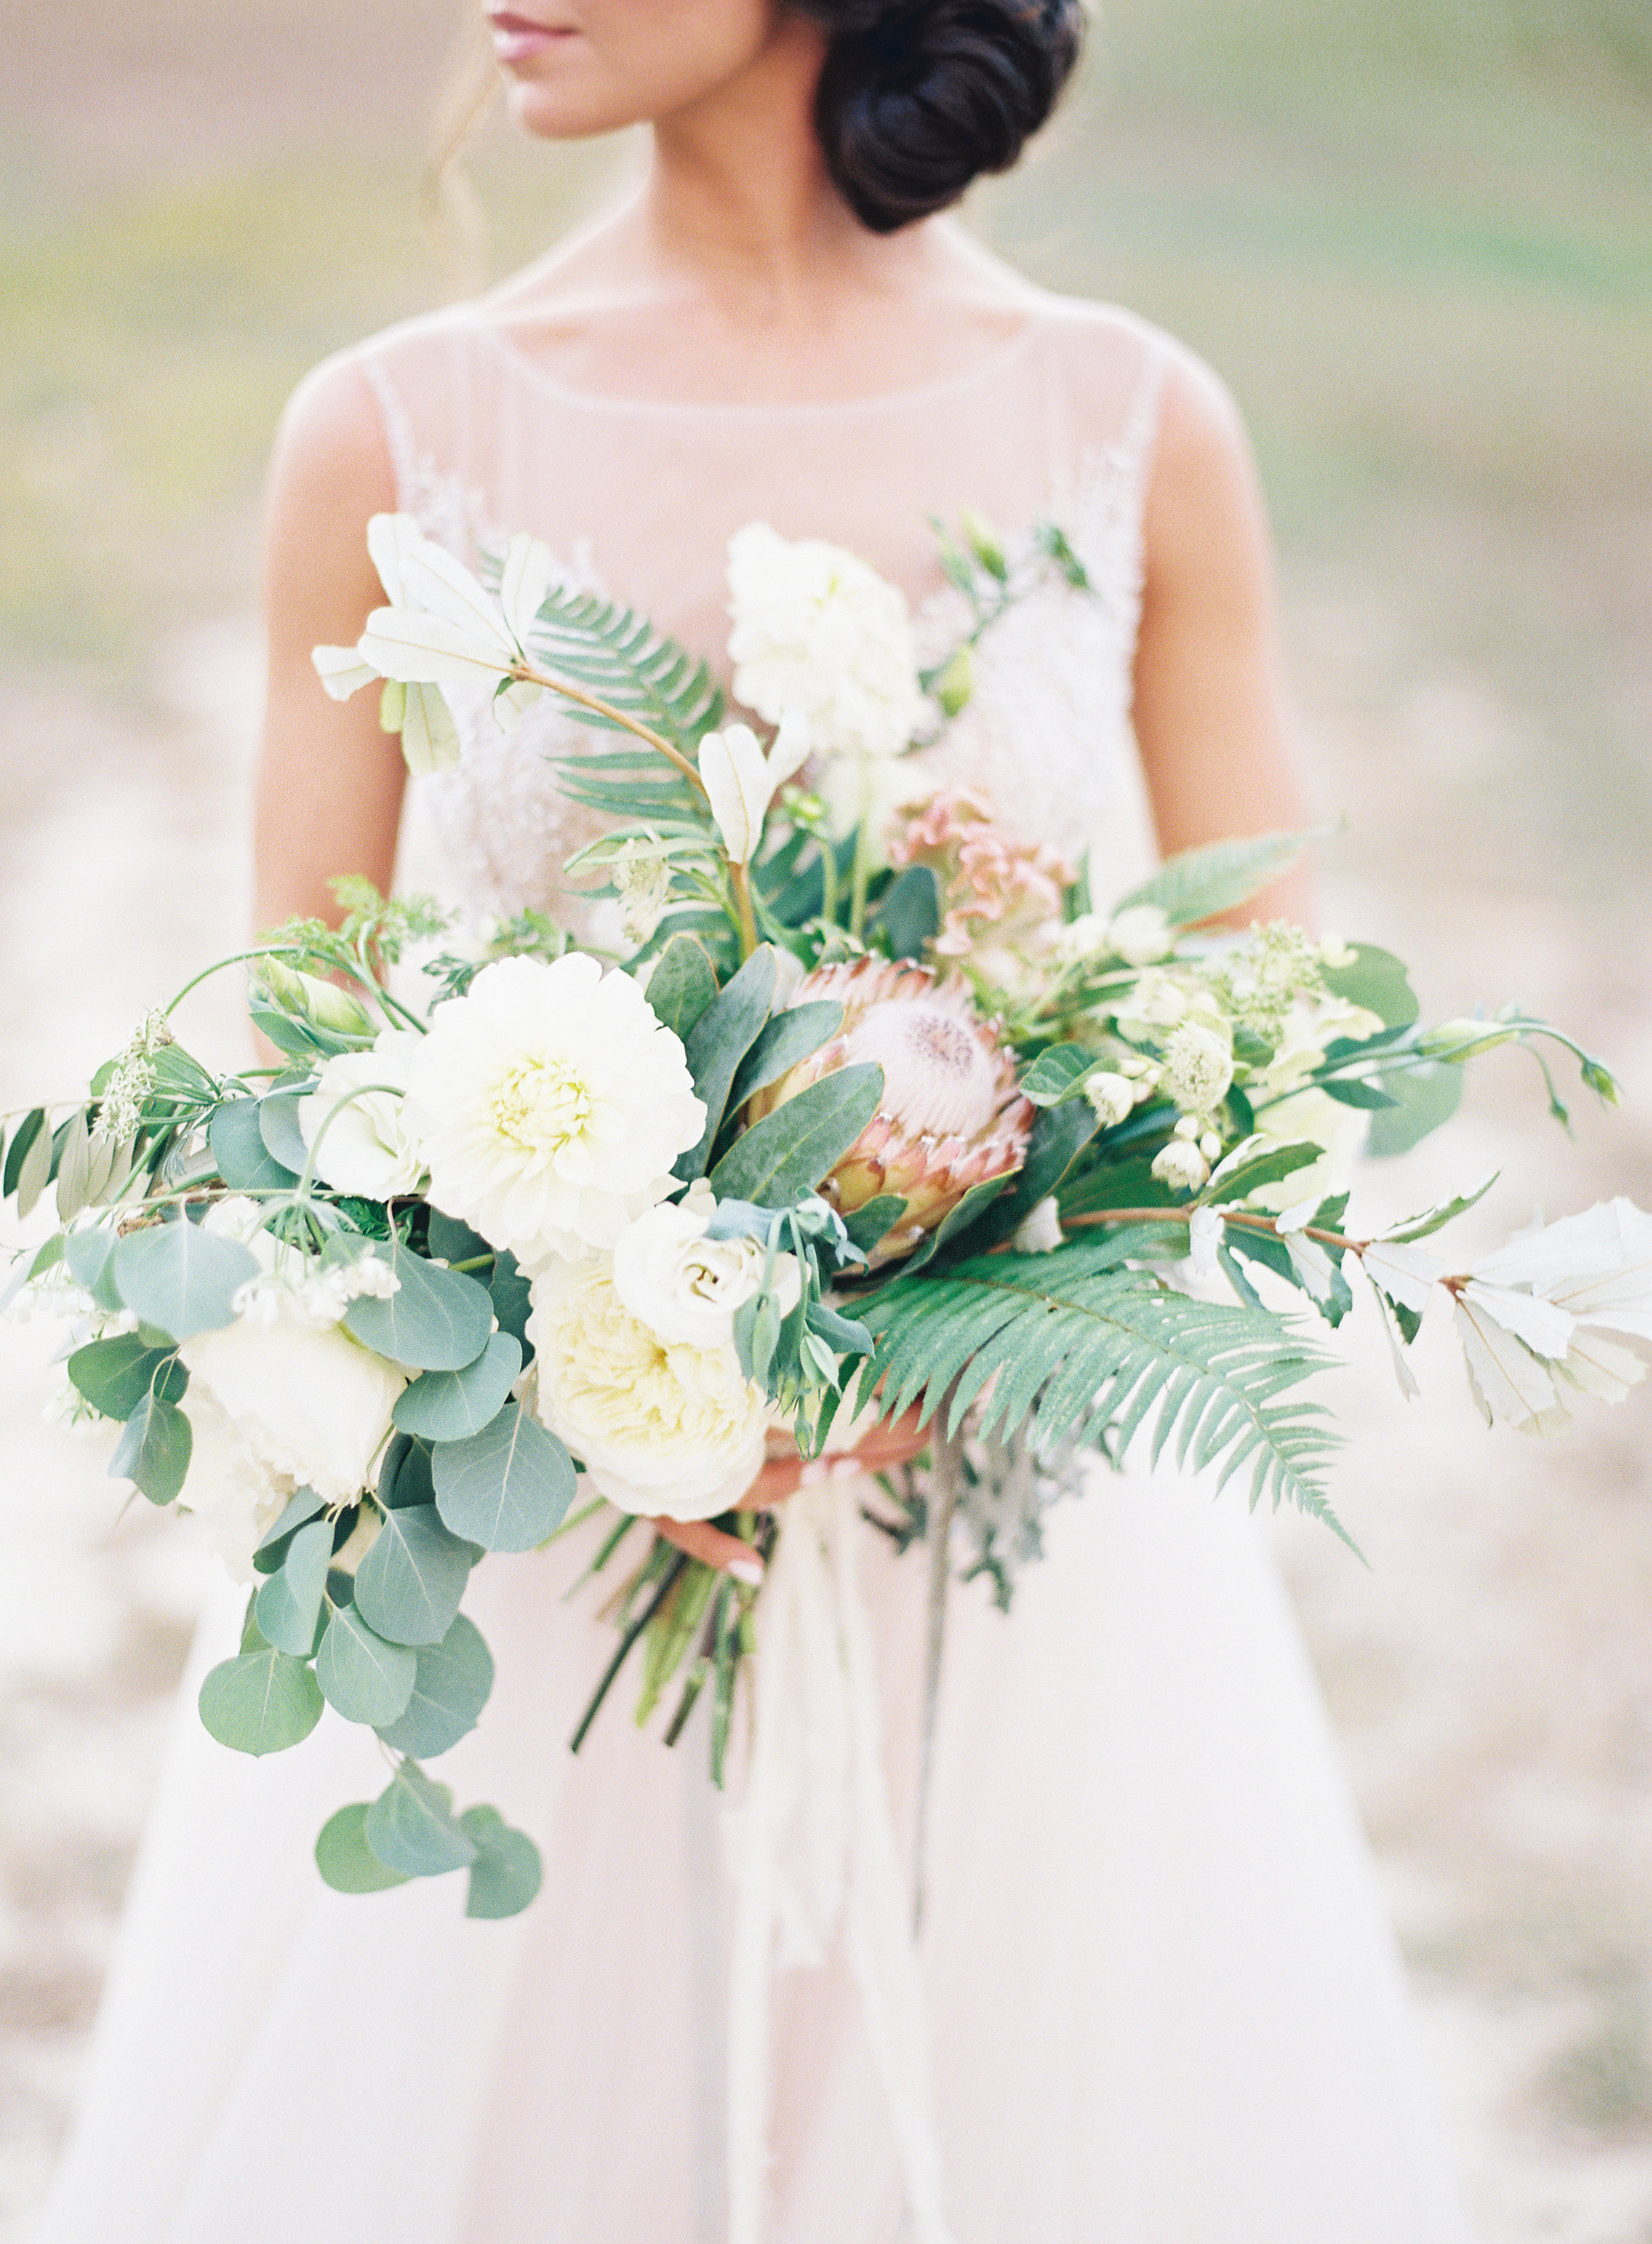 Fern Wedding Bouquet with Garden Roses and Protea